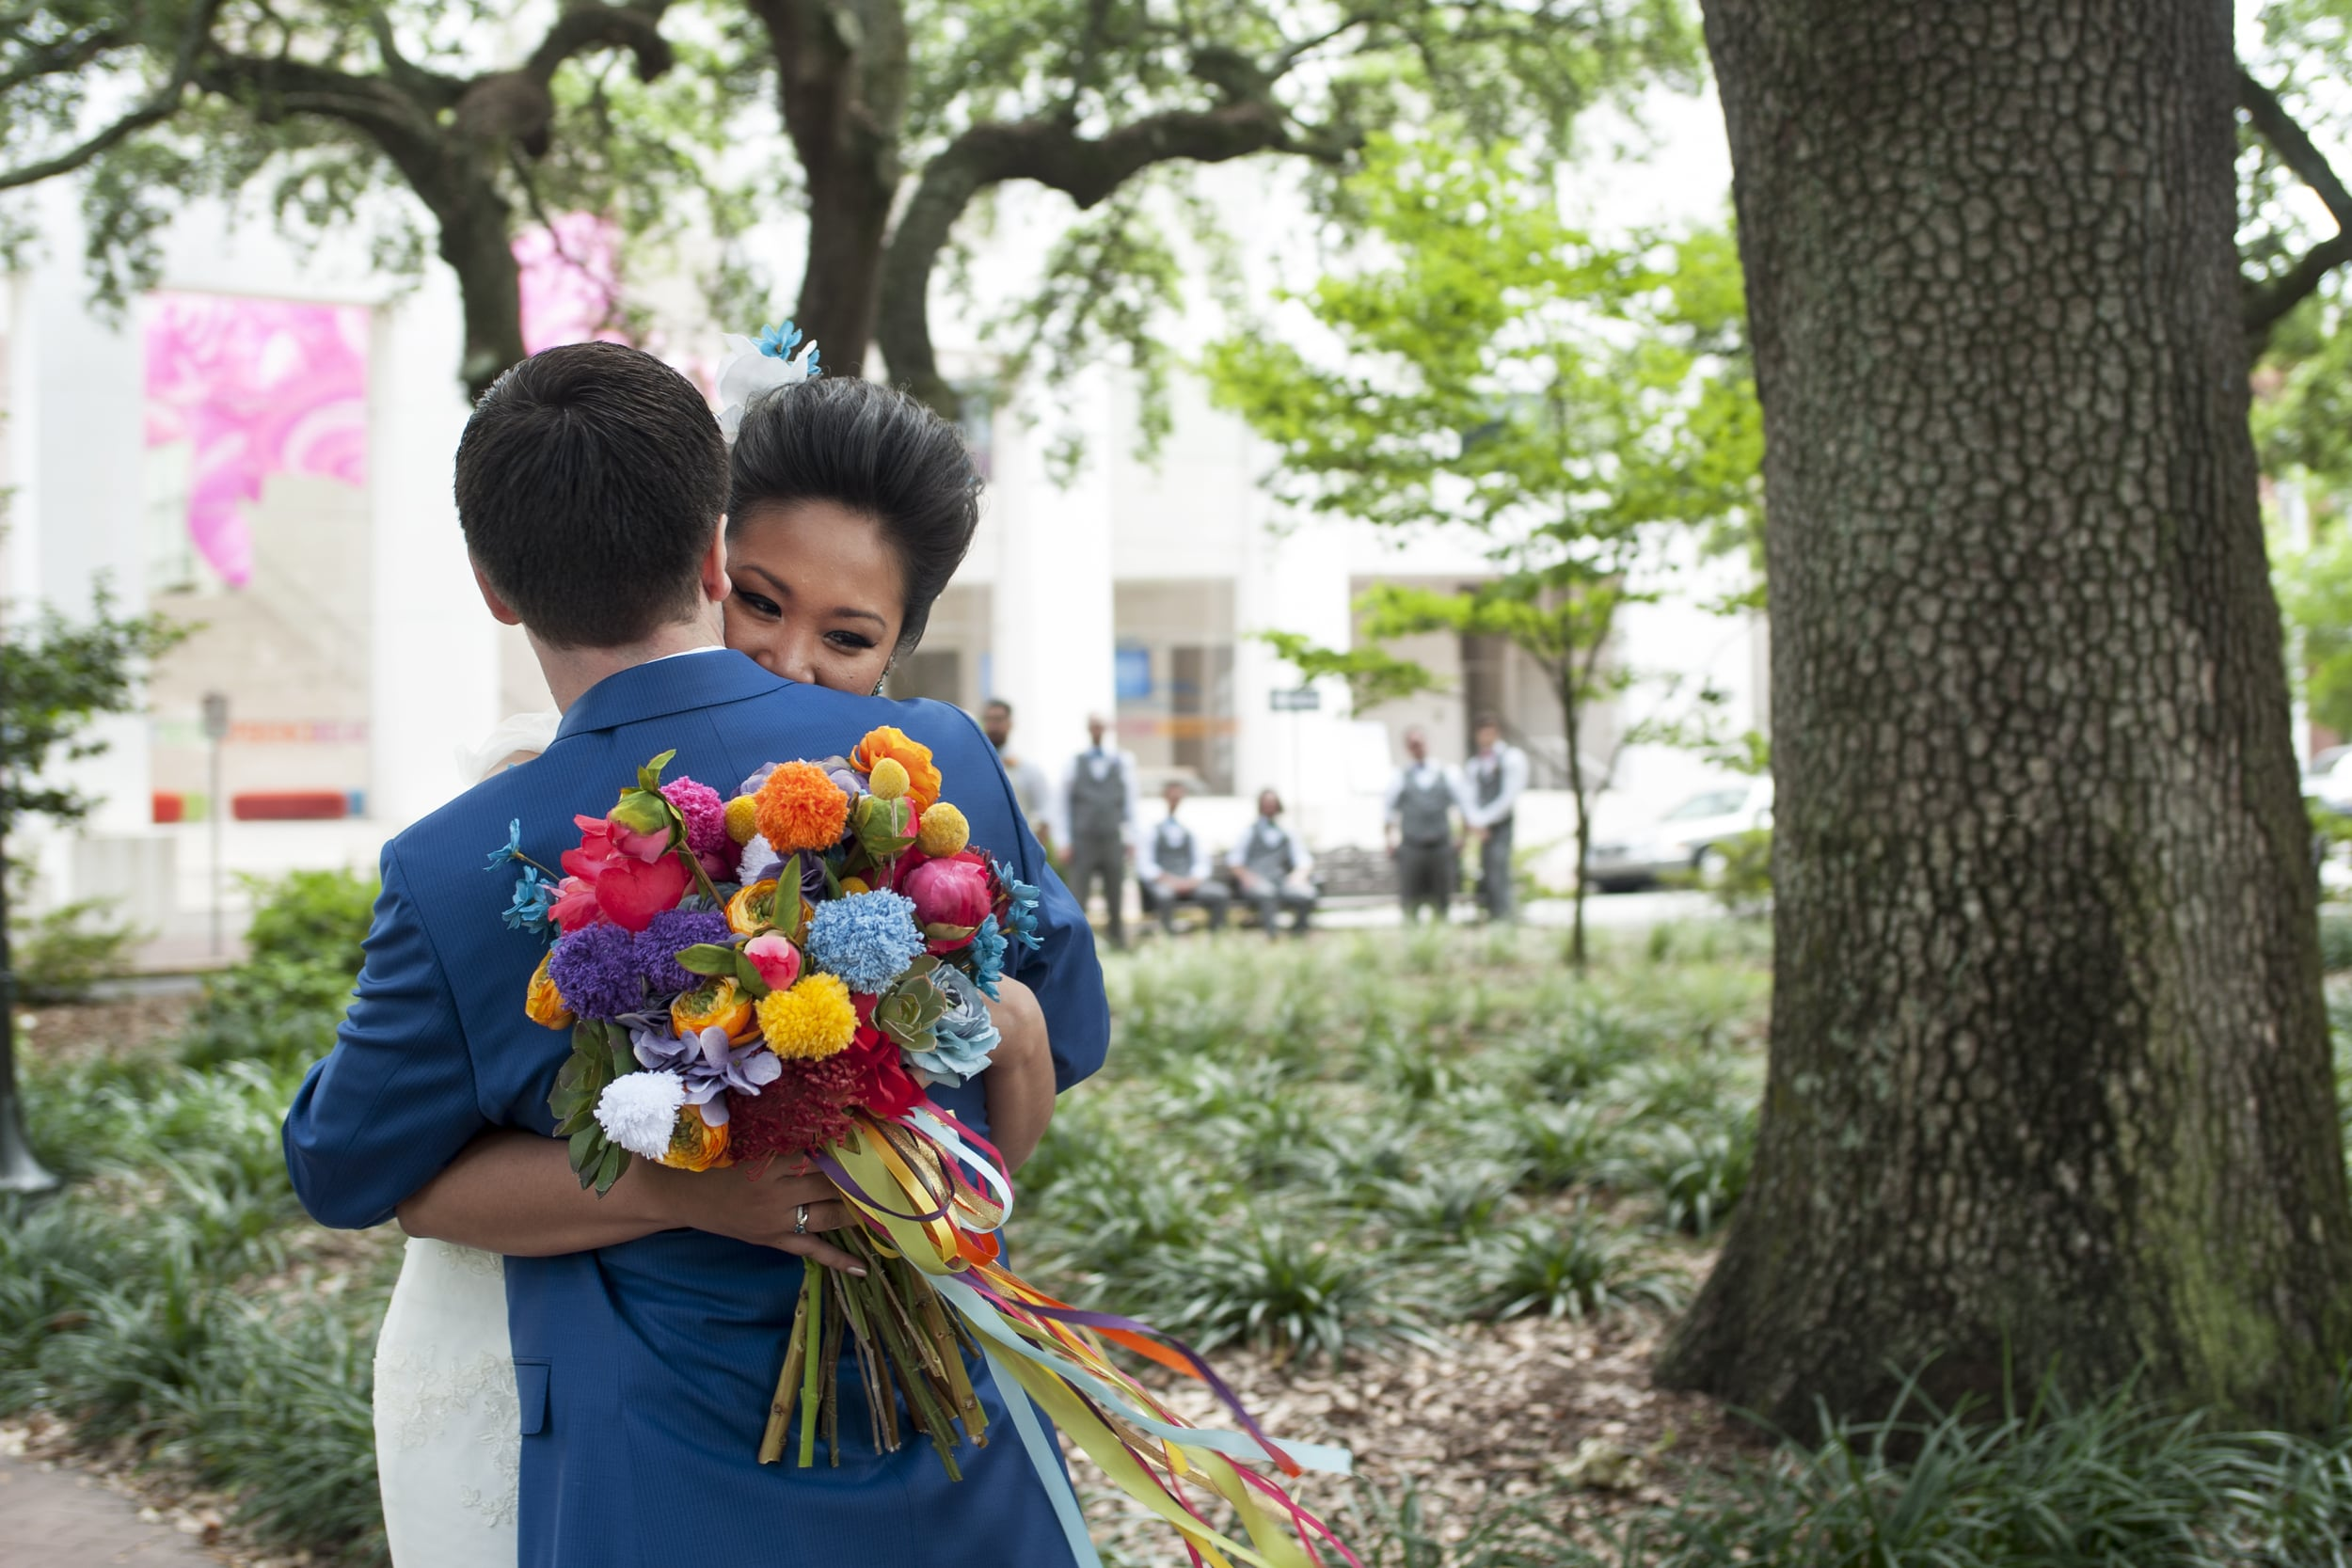 jeff-and-mollie-take-pictures-ivory-and-beau-wedding-planning-ivory-and-beau-bridal-boutique-old-fort-jackson-wedding-colorful-wedding-savannah-wedding-planner-savannah-weddings-michelle-and-johnny-wedding-savannah-weddings-indie-wedding-10.jpg